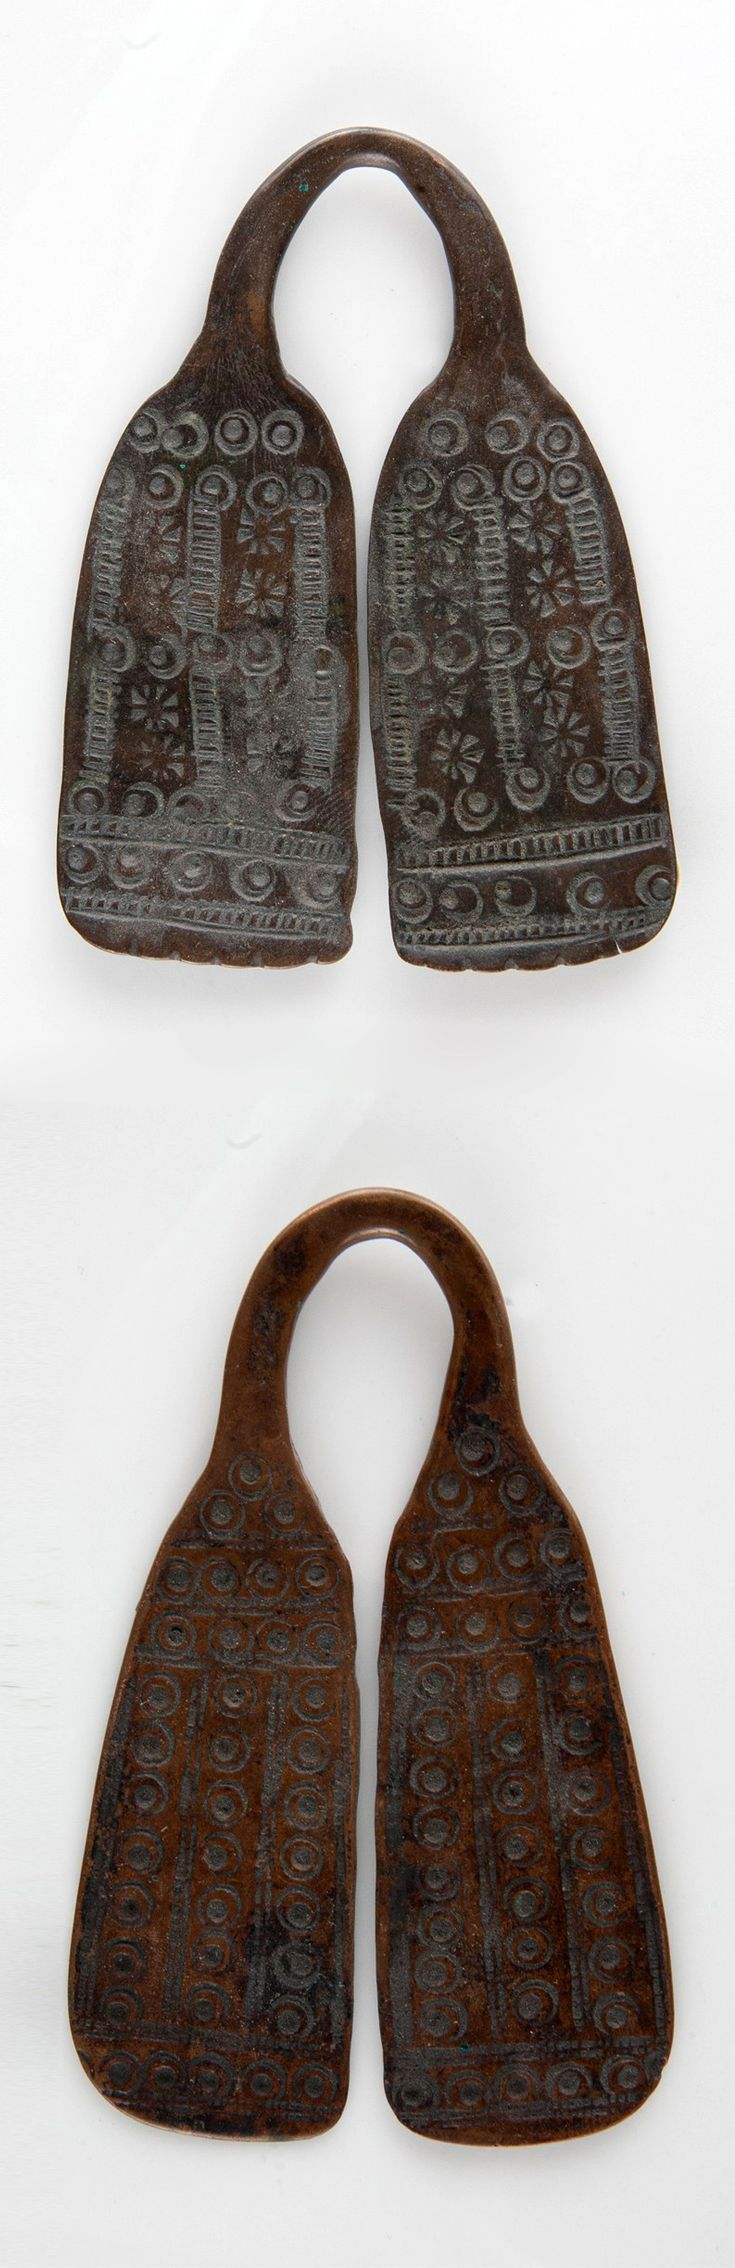 Ethiopia | Two pendants from the Sidamo / Oromo people | Copper | 40CHF ~ sold (Dec '14)